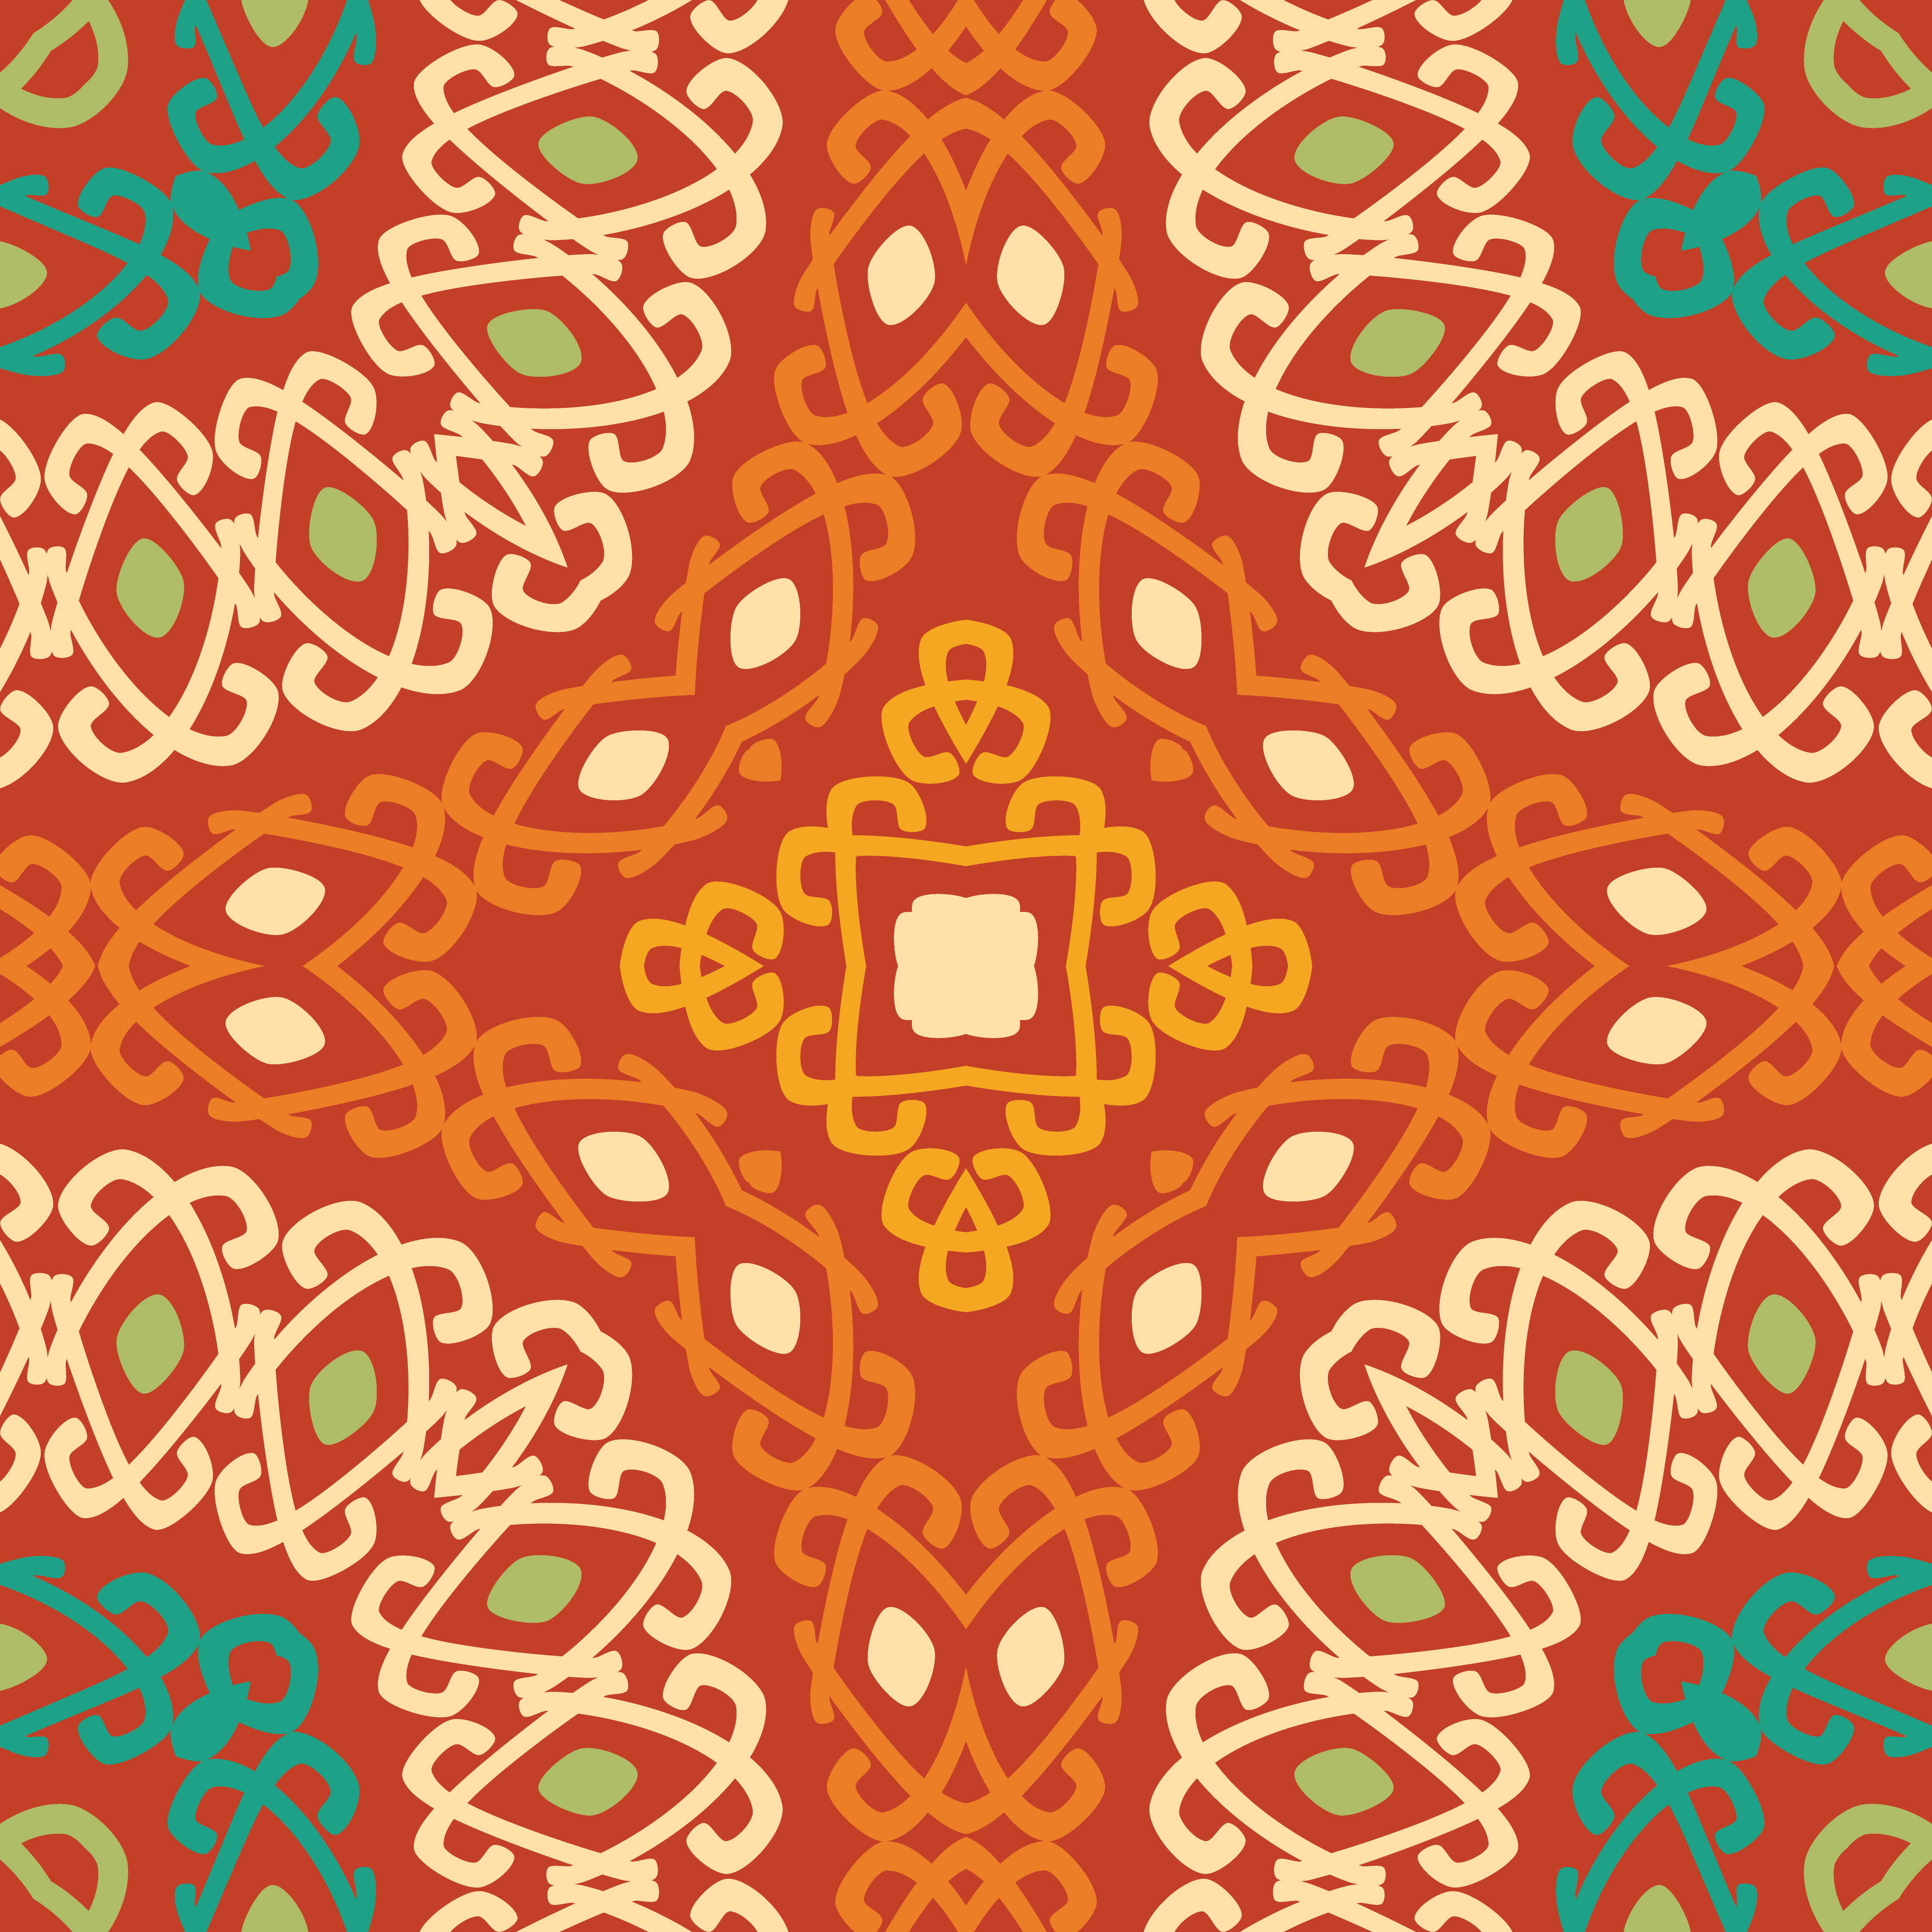 Colorful Tribal Ethnic Seamless Pattern. 435013